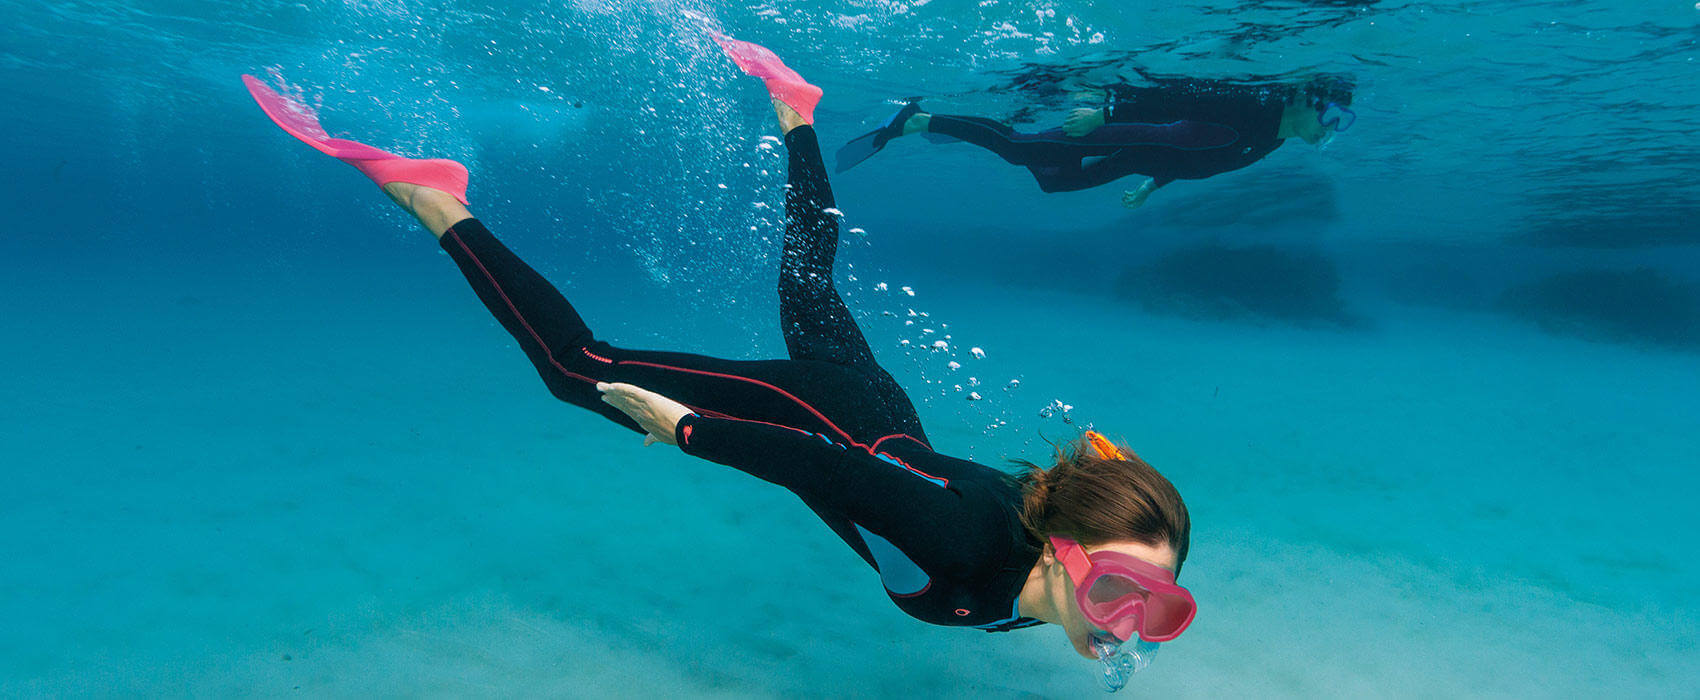 How to choose your snorkeling kit?